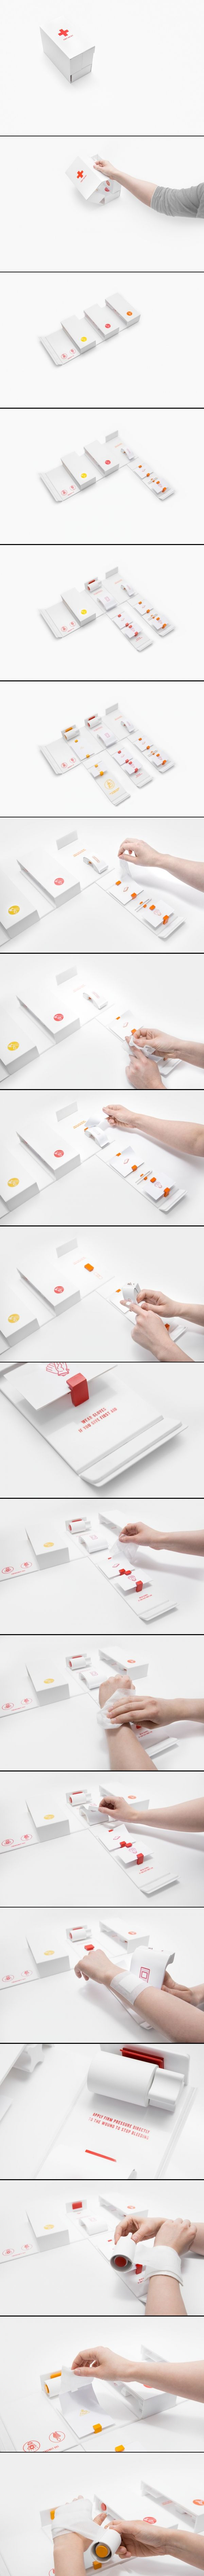 DIY FIRST AID Kit #packaging by GABRIELE MELDAIKYTE for you @Antònia Calafat Capó curated by Packaging Diva PD